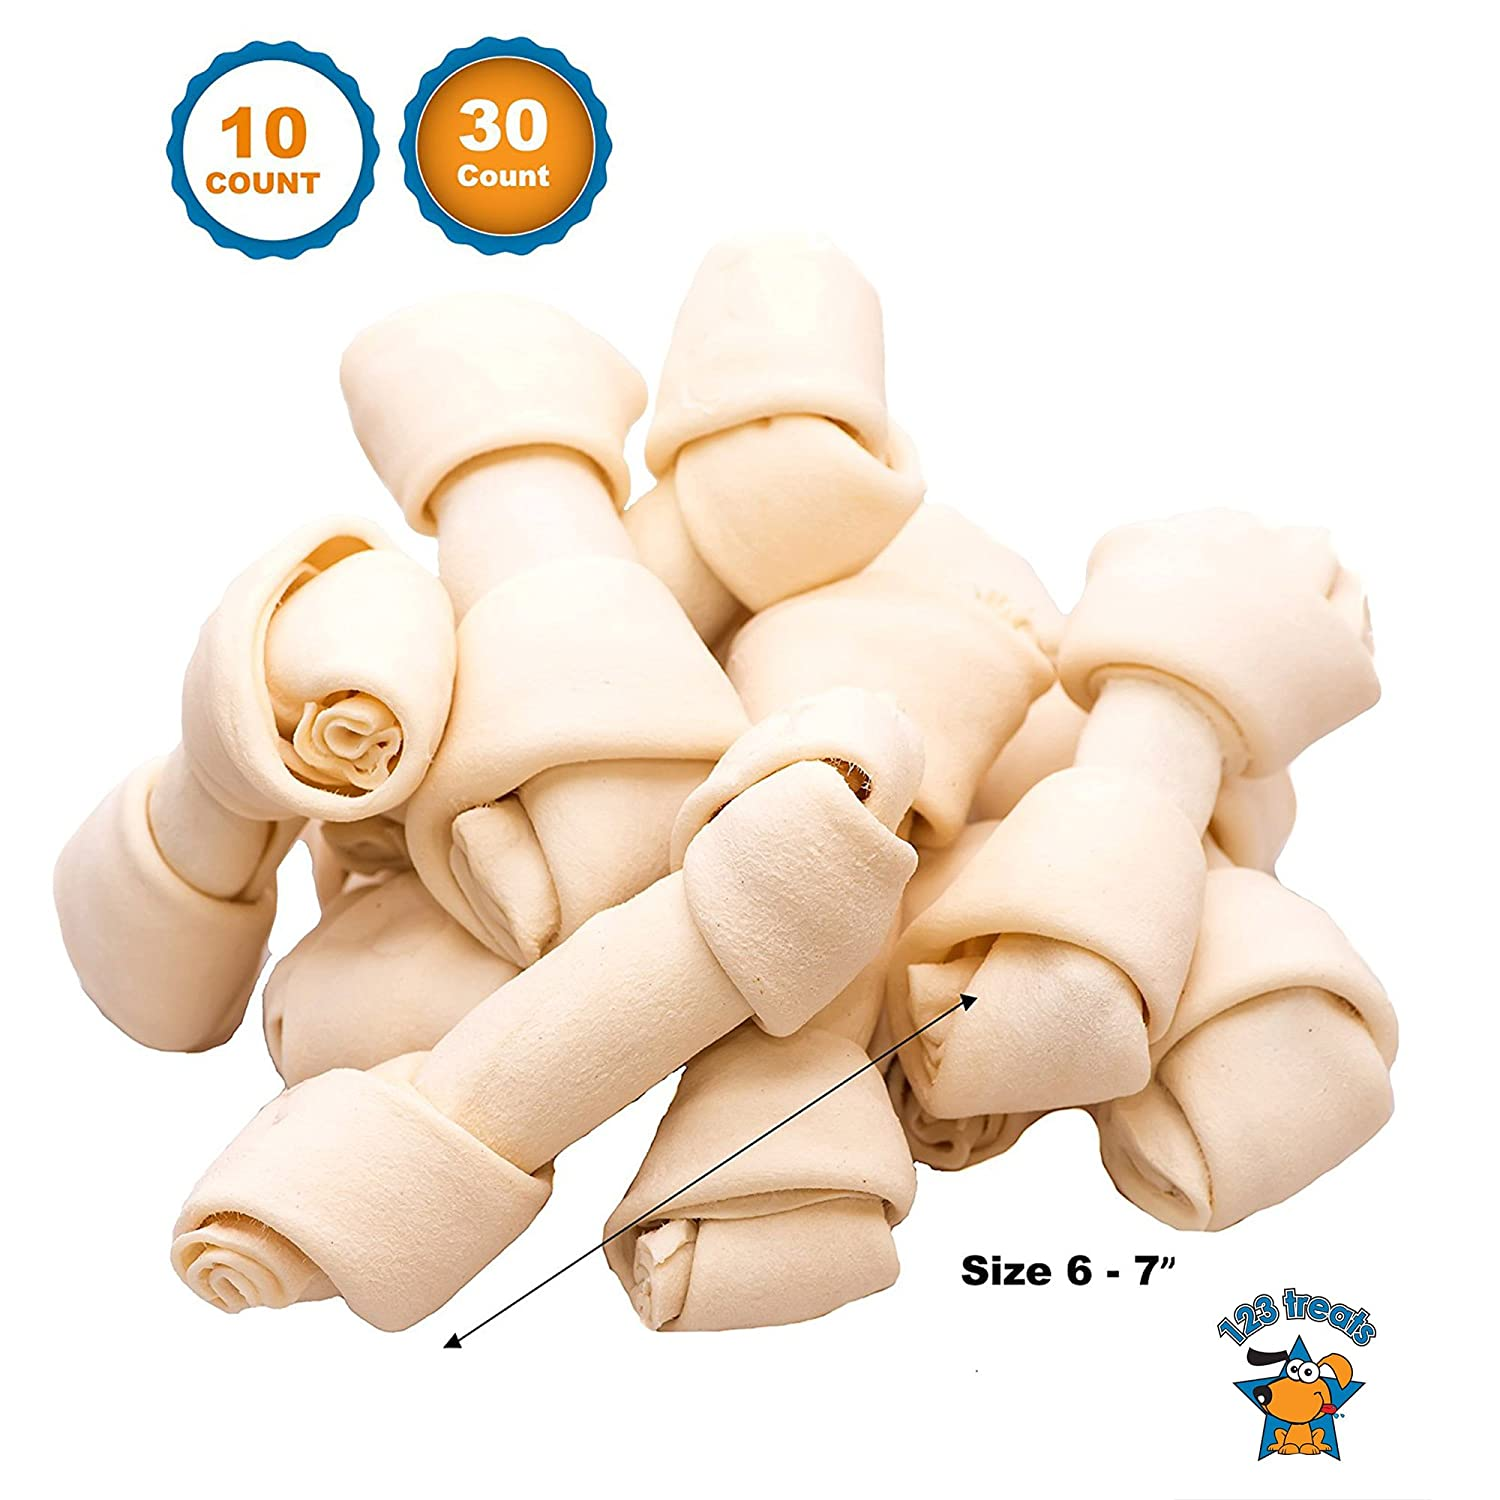 123 Treats – Dog Rawhide Chews Bones 6-7 inches for Medium to Large Dogs 100 Natural Premium Bulk Treats